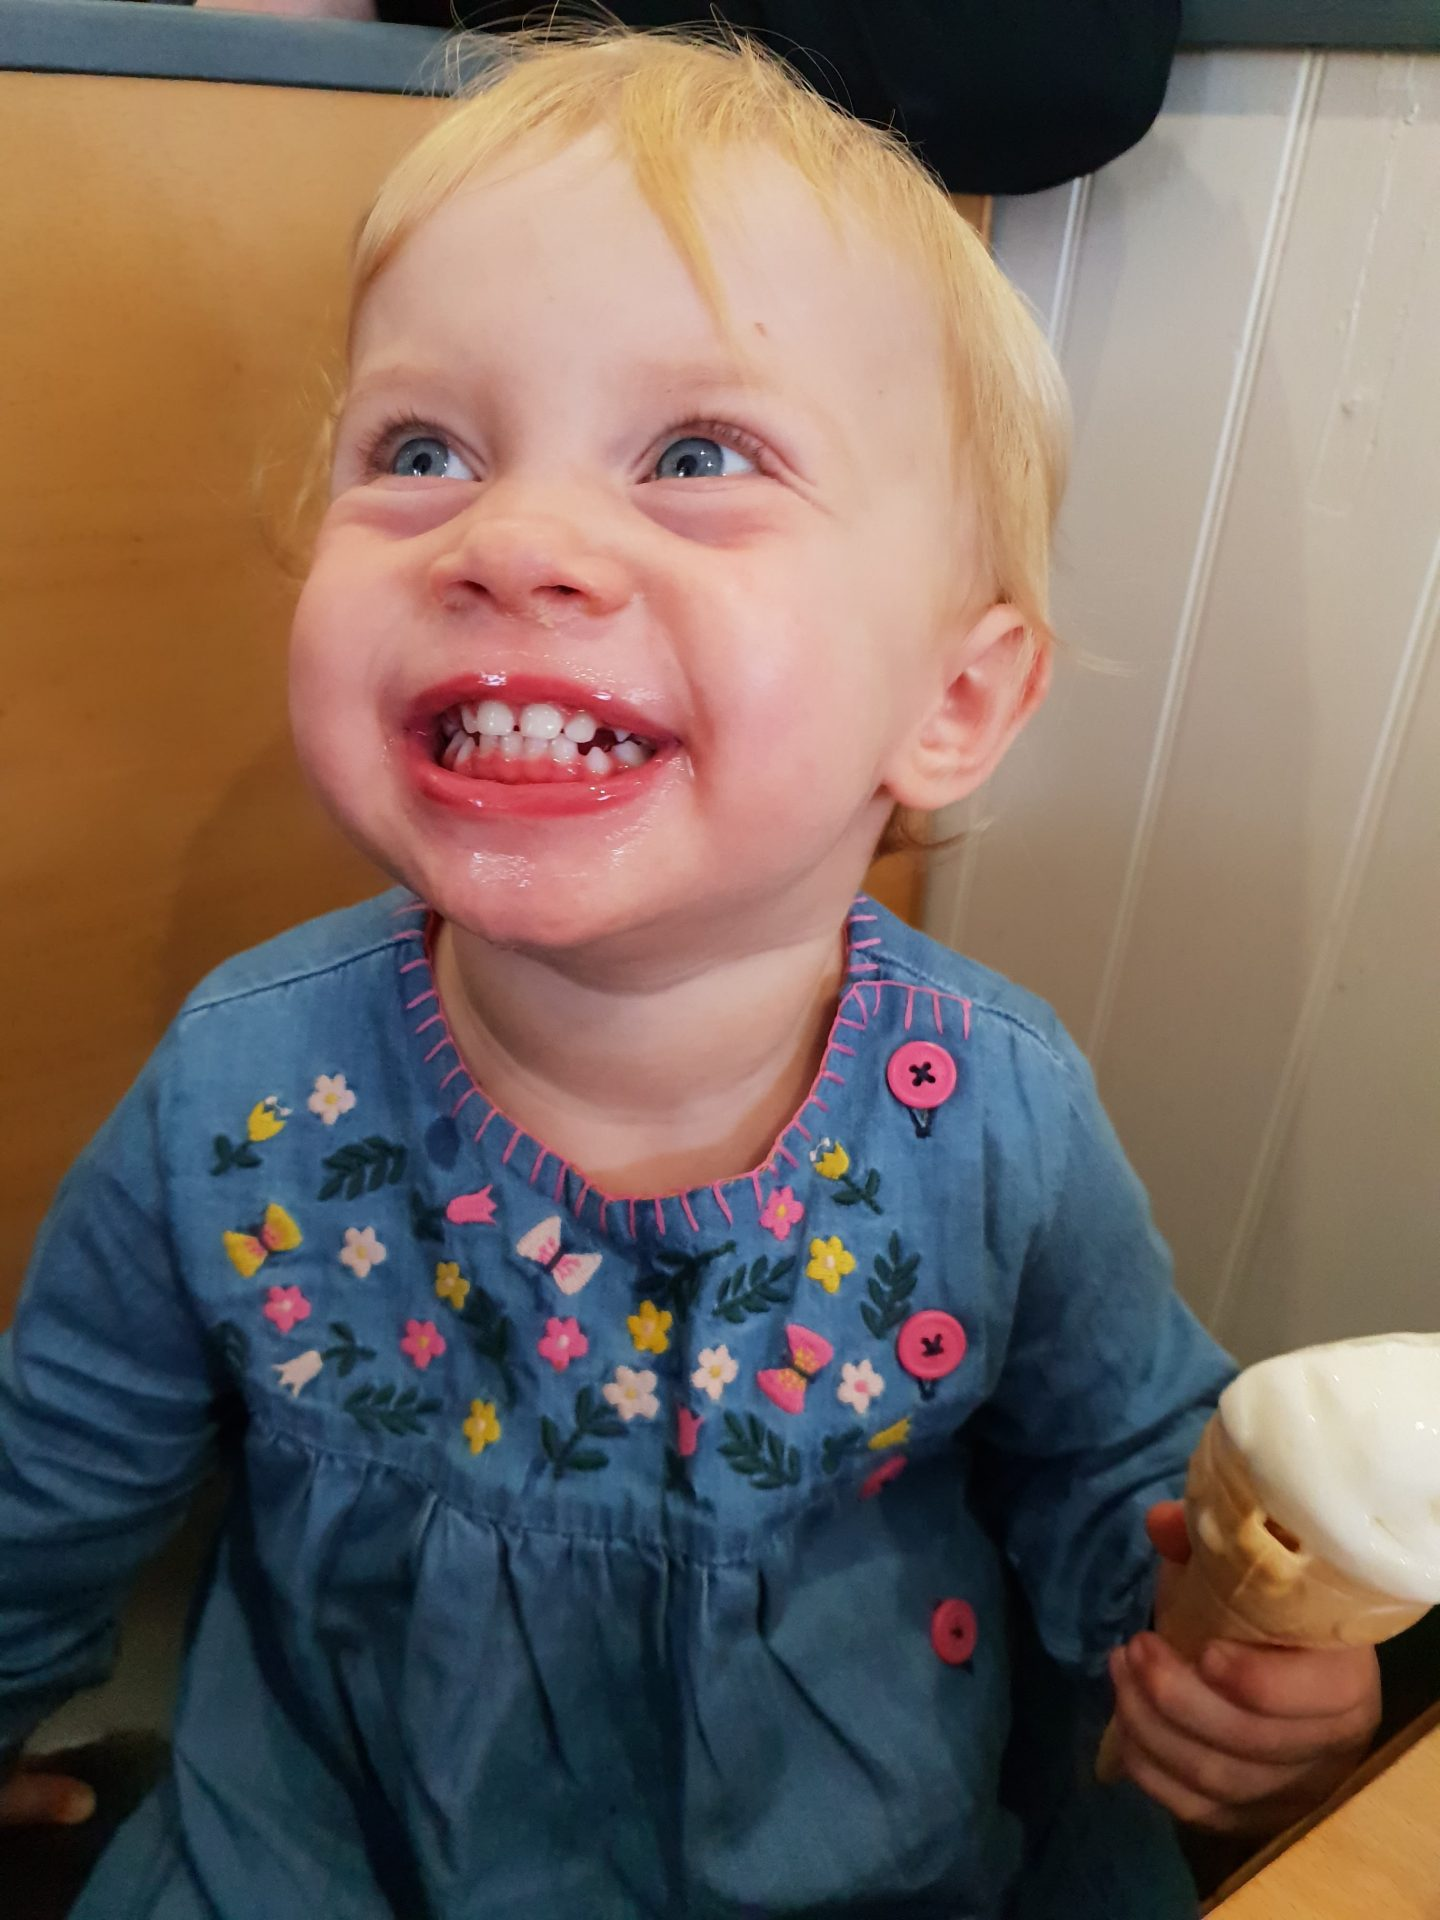 Toddler smiling after Moomaid of Zennor ice cream at St. Ives, Cornwall